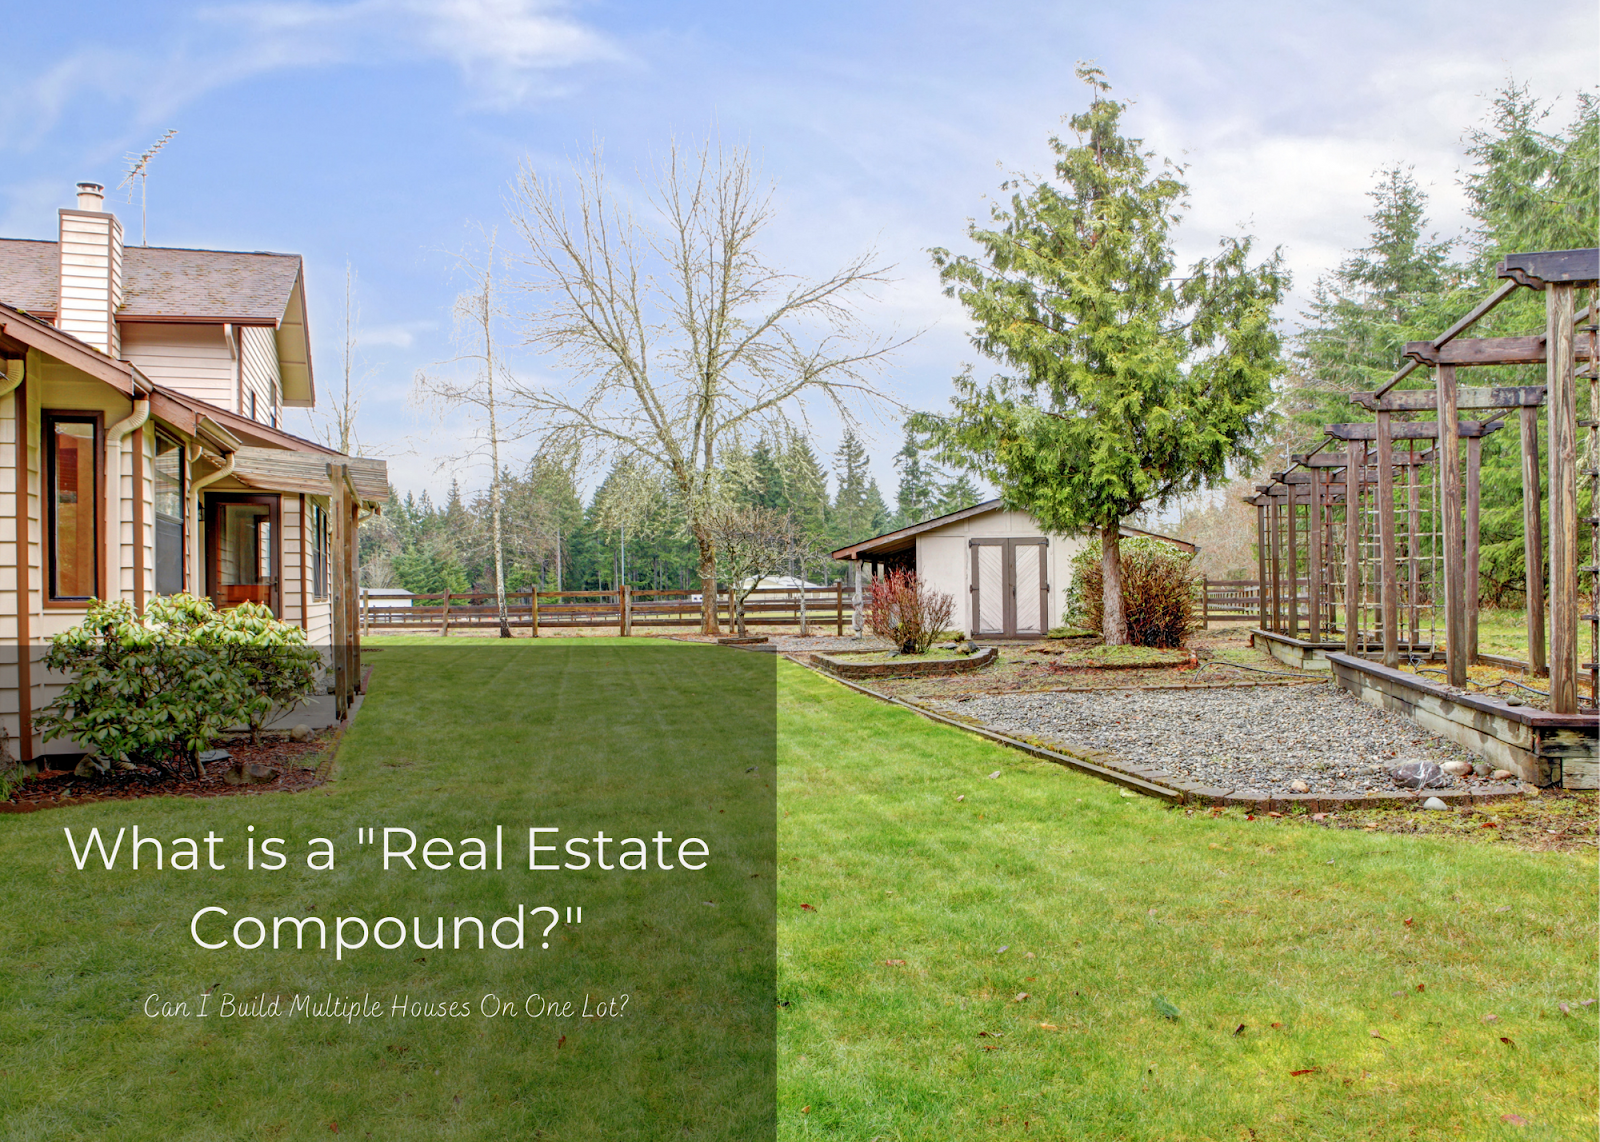 a real estate compound is when you build a second house on one property